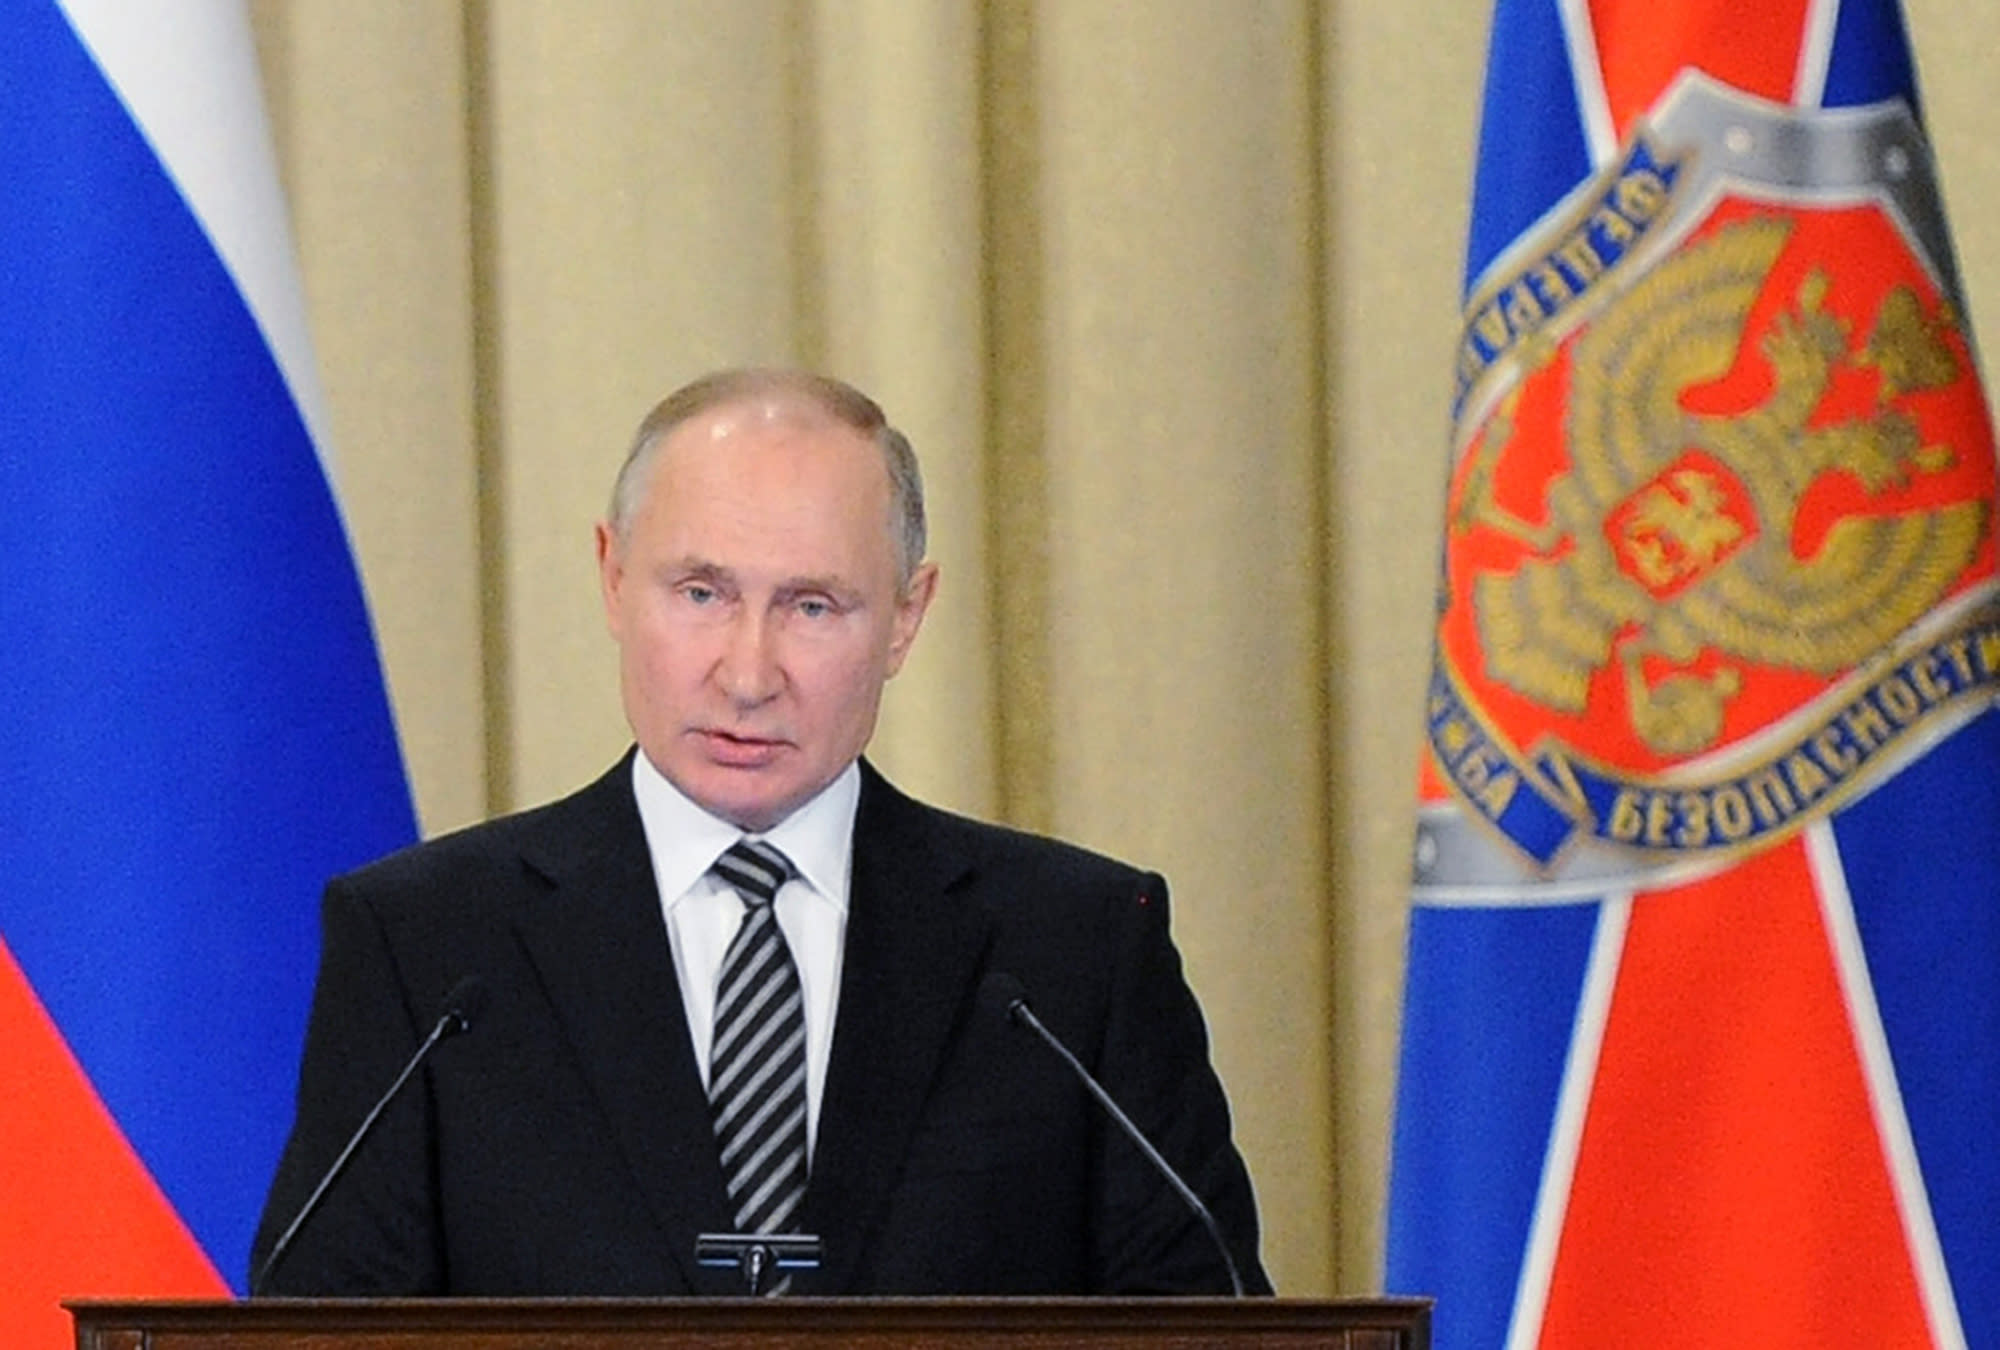 Putin warns of foreign efforts to destabilize Russia